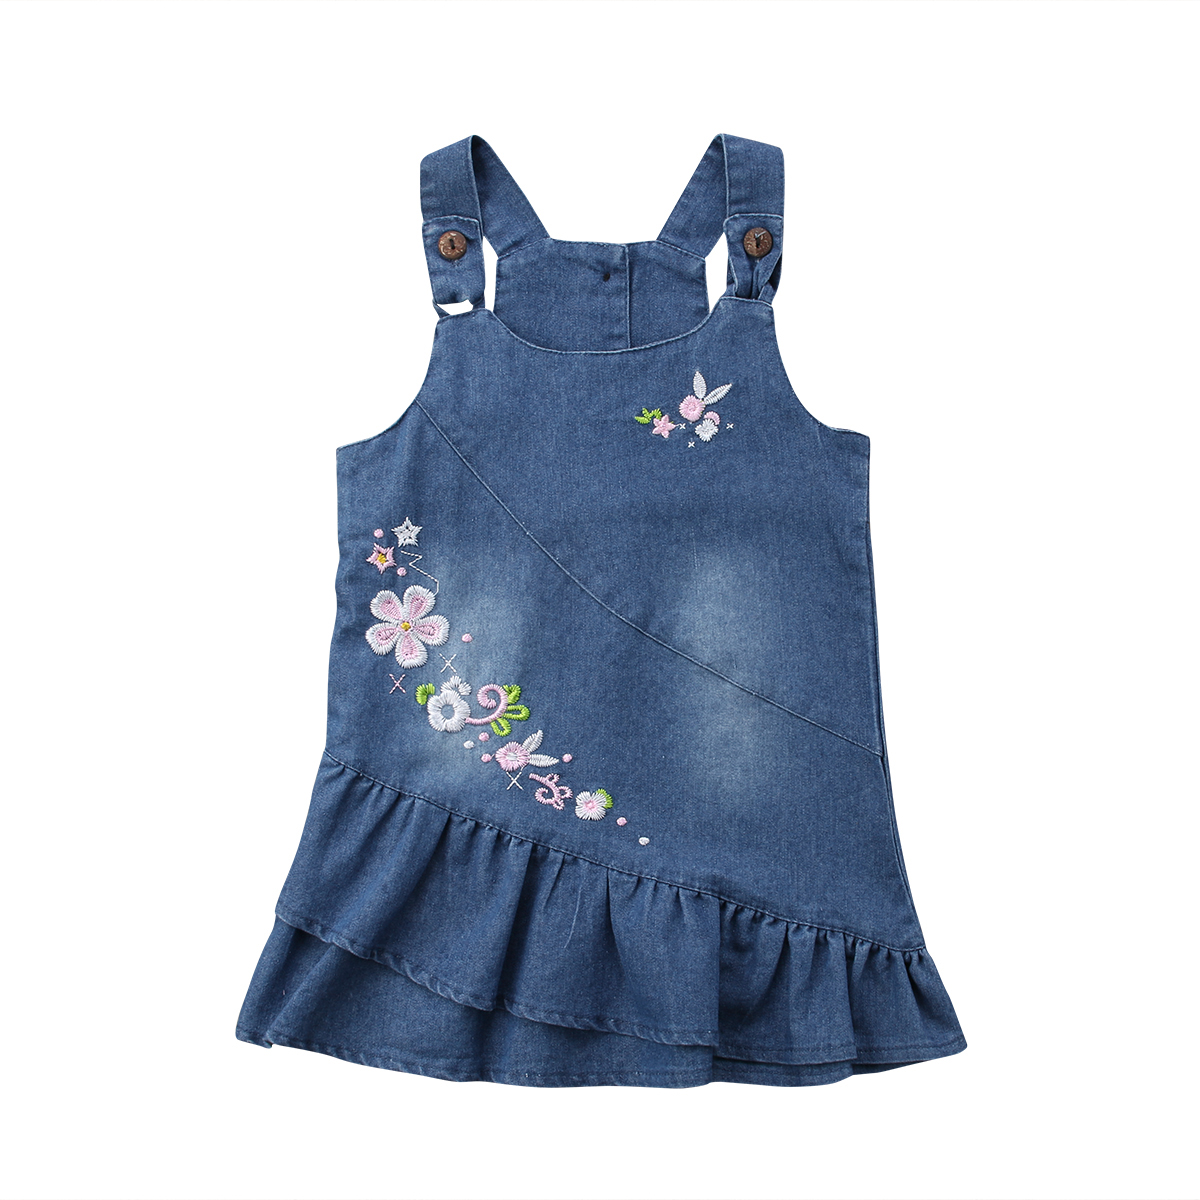 2018 Fashion Baby Girls Suspender Denim Dress Summer Floral Toddler Kids Sundress Jeans Sleeveless Dresses for Kids Girl Clothes teenage girls dresses summer style sleeveless denim dress for girls clothing teens sundress kids clothes 2 4 6 8 10 12 14 15 y